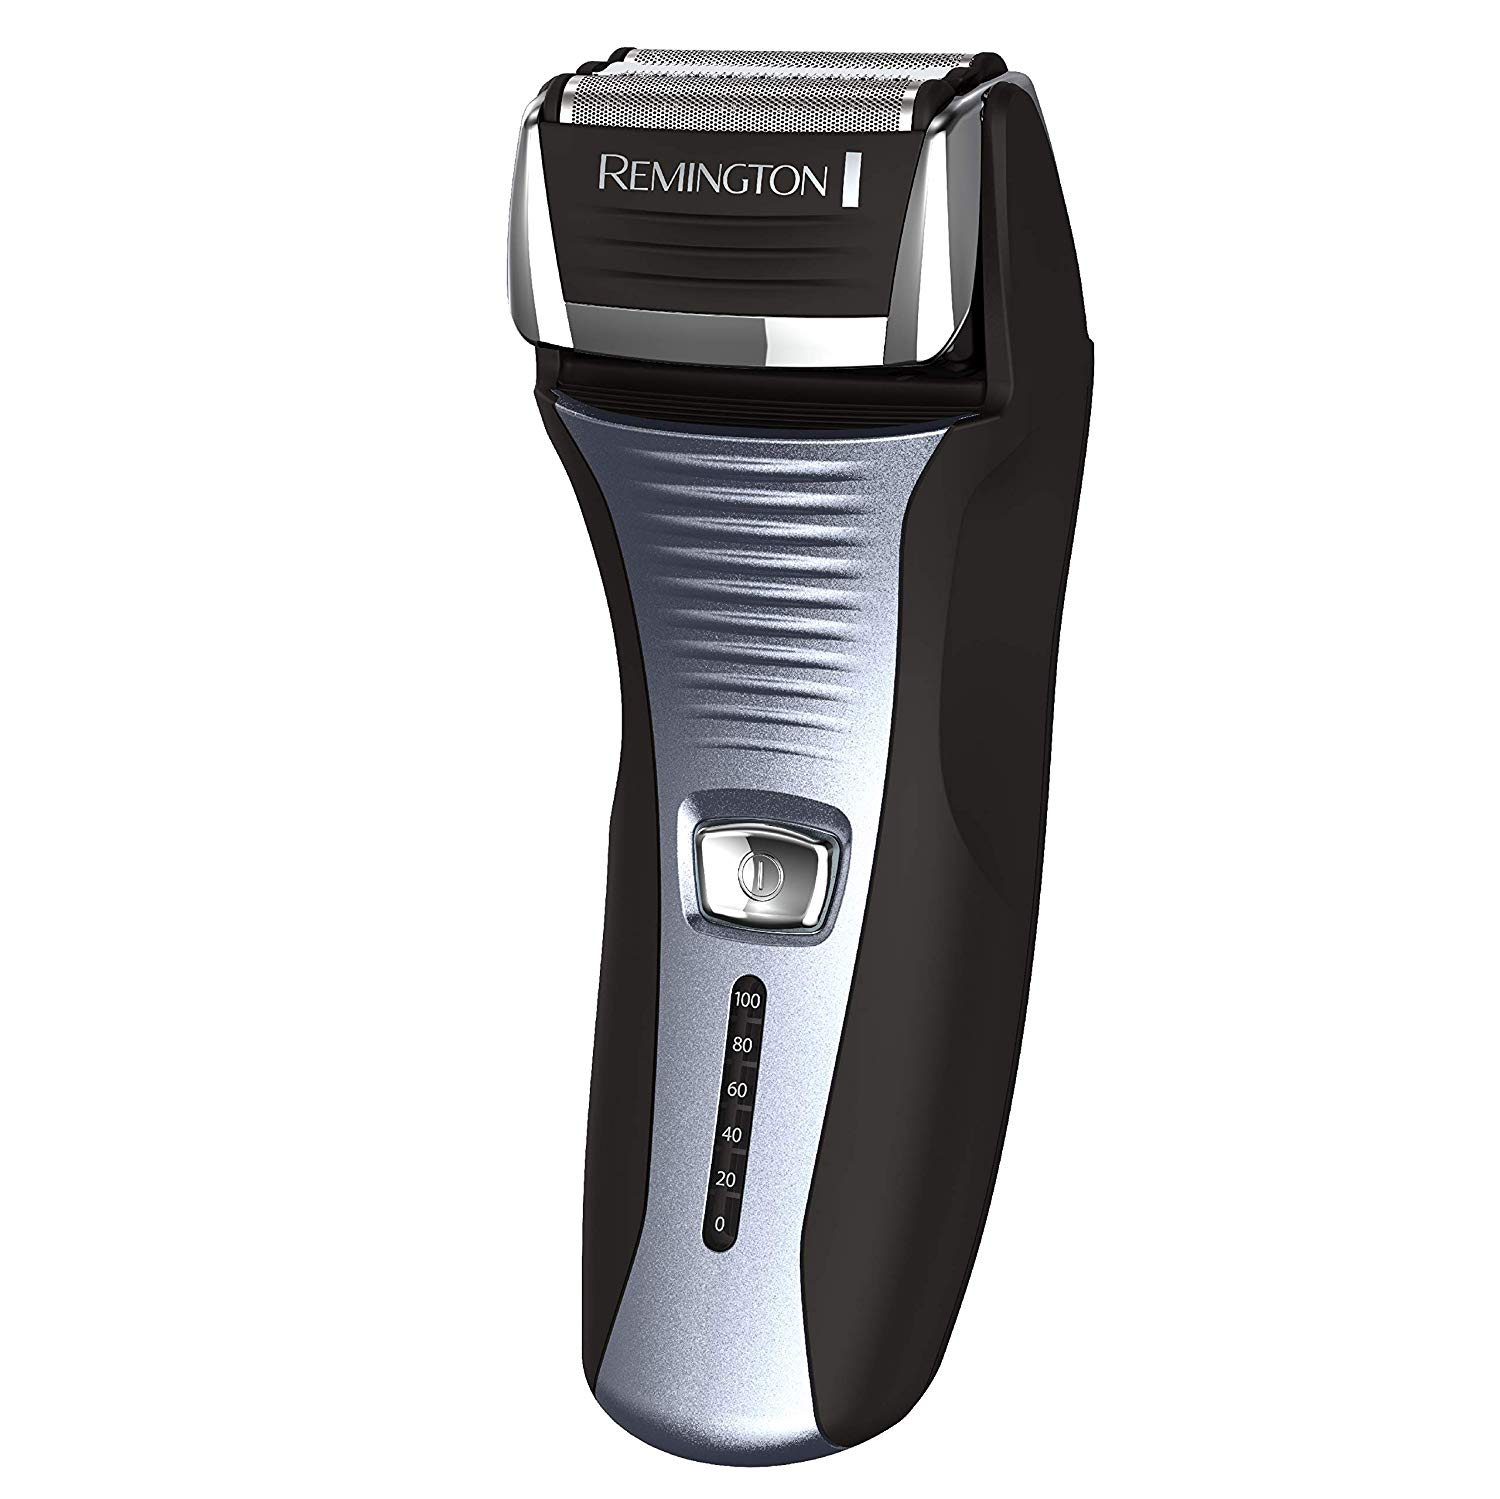 remington-f5-5800-foil-electric-razor